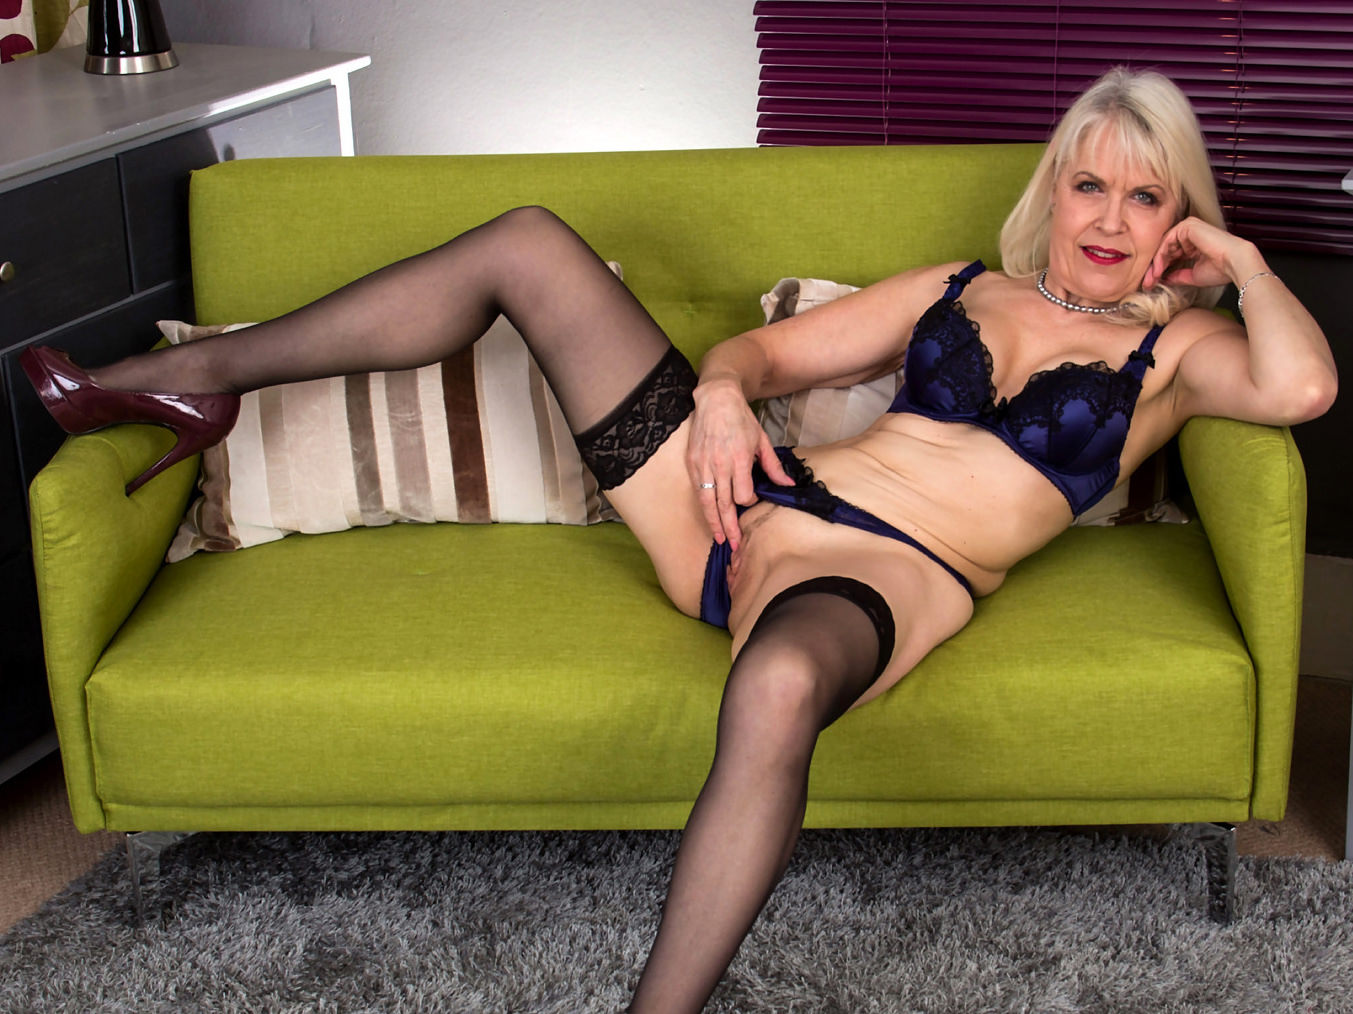 Old Woman Wearing Stocking And High Heels Free Hd Porn B8-1439